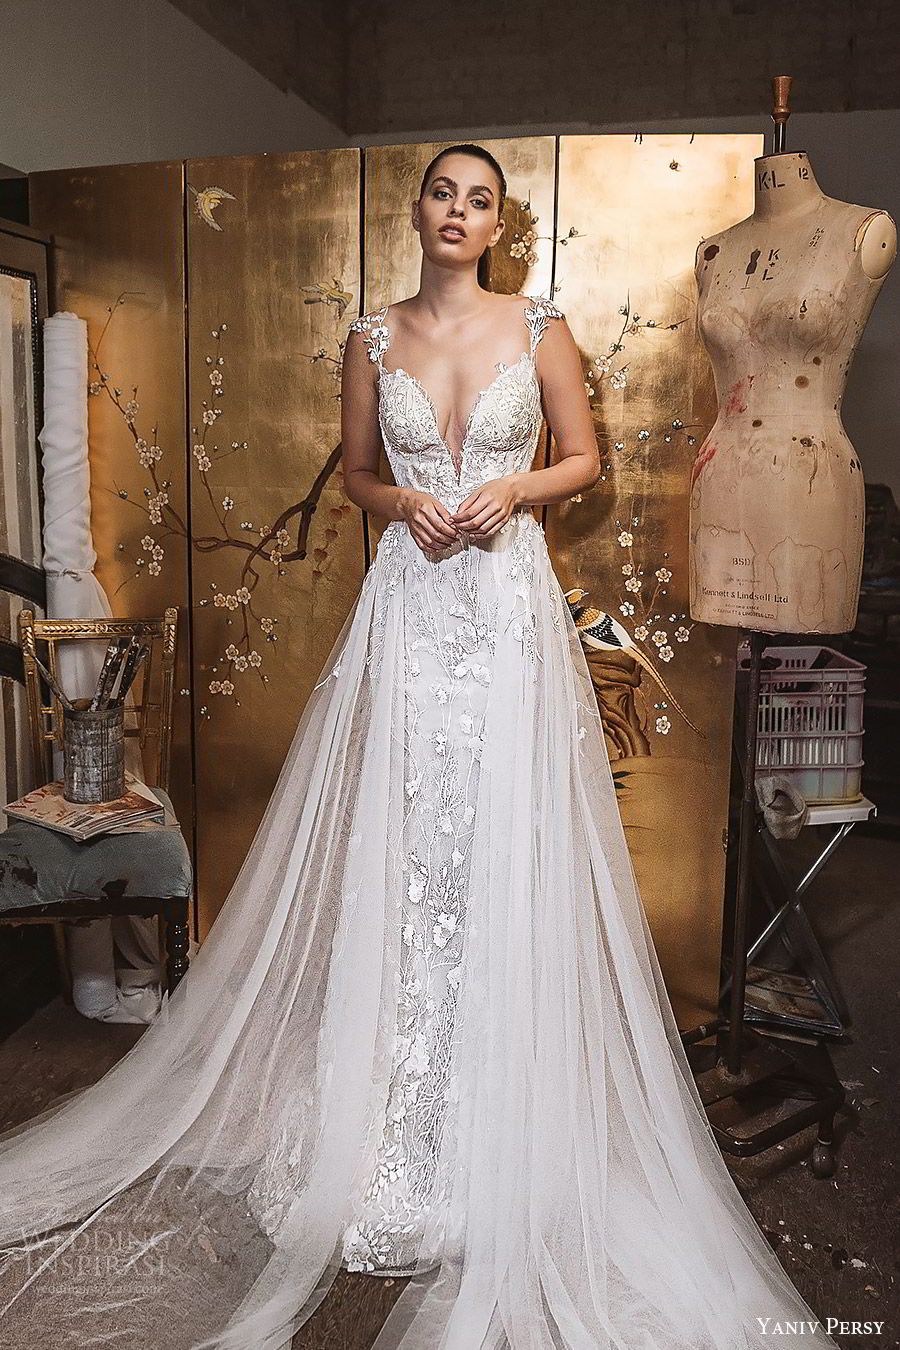 yaniv persy fall 2019 lavish bridal beaded cap sleeves plunging sweetheart allover lace sheat trumpet wedding dress tulle ball gown skirt chapel train romantic sexy (2) mv